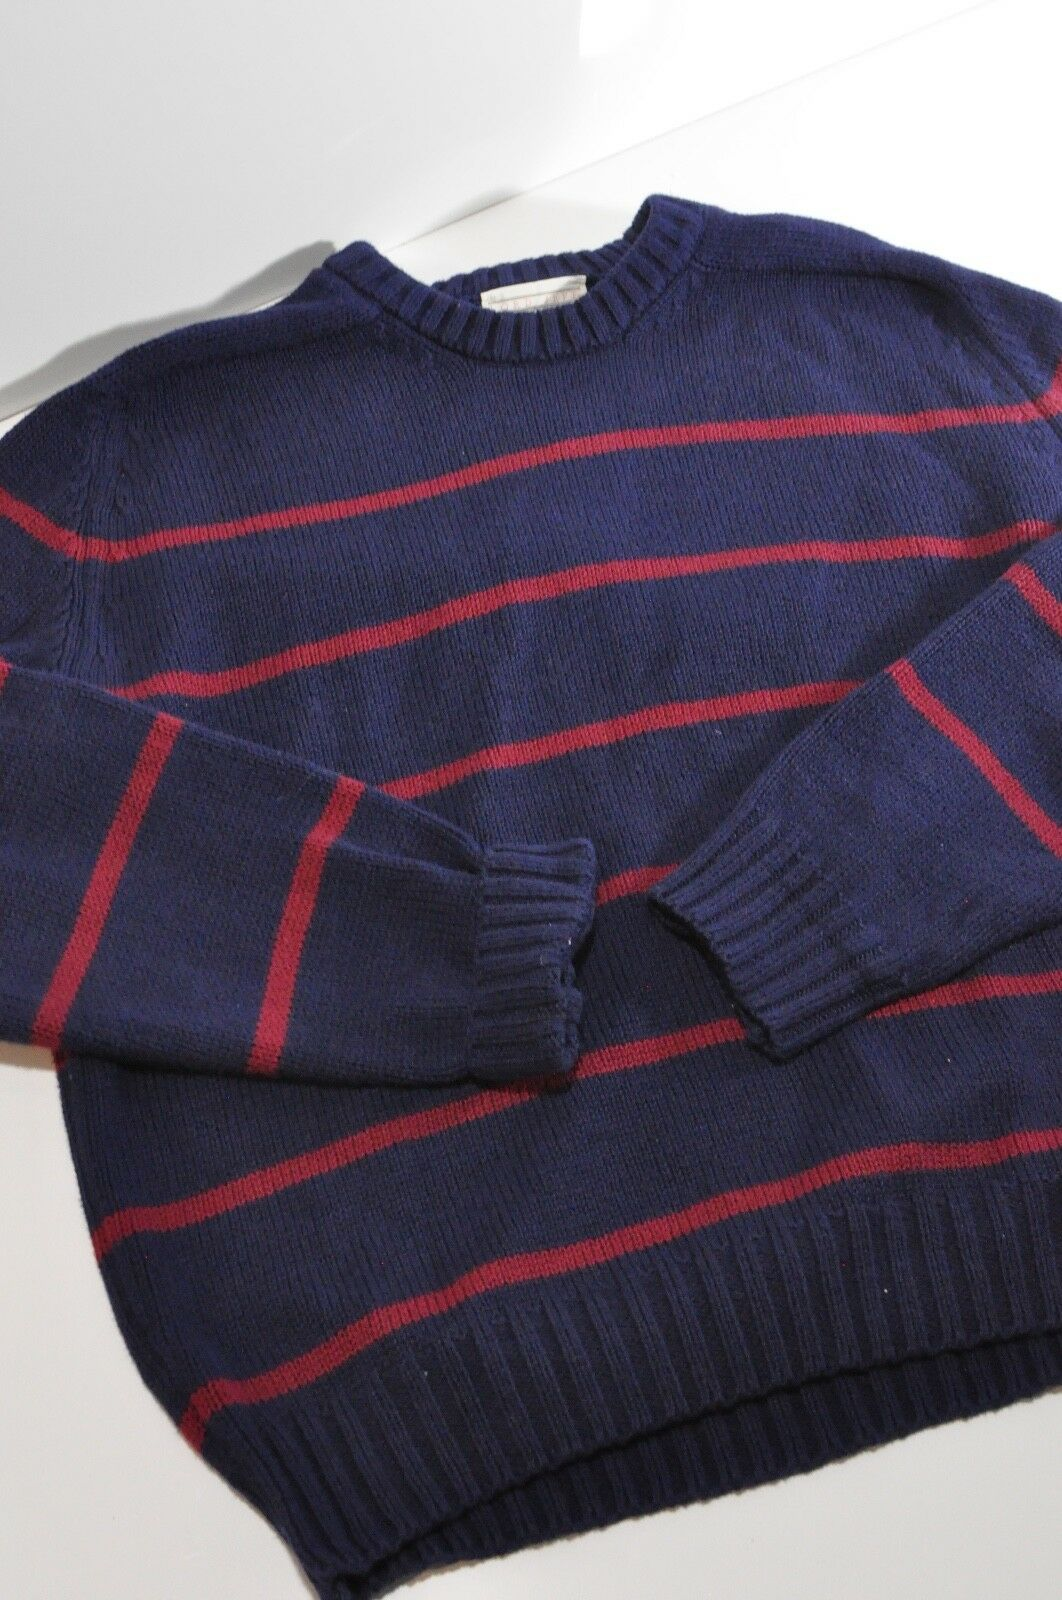 Vintage Lord Jeff 100% fine Cotton sweater Mens XL made in USA